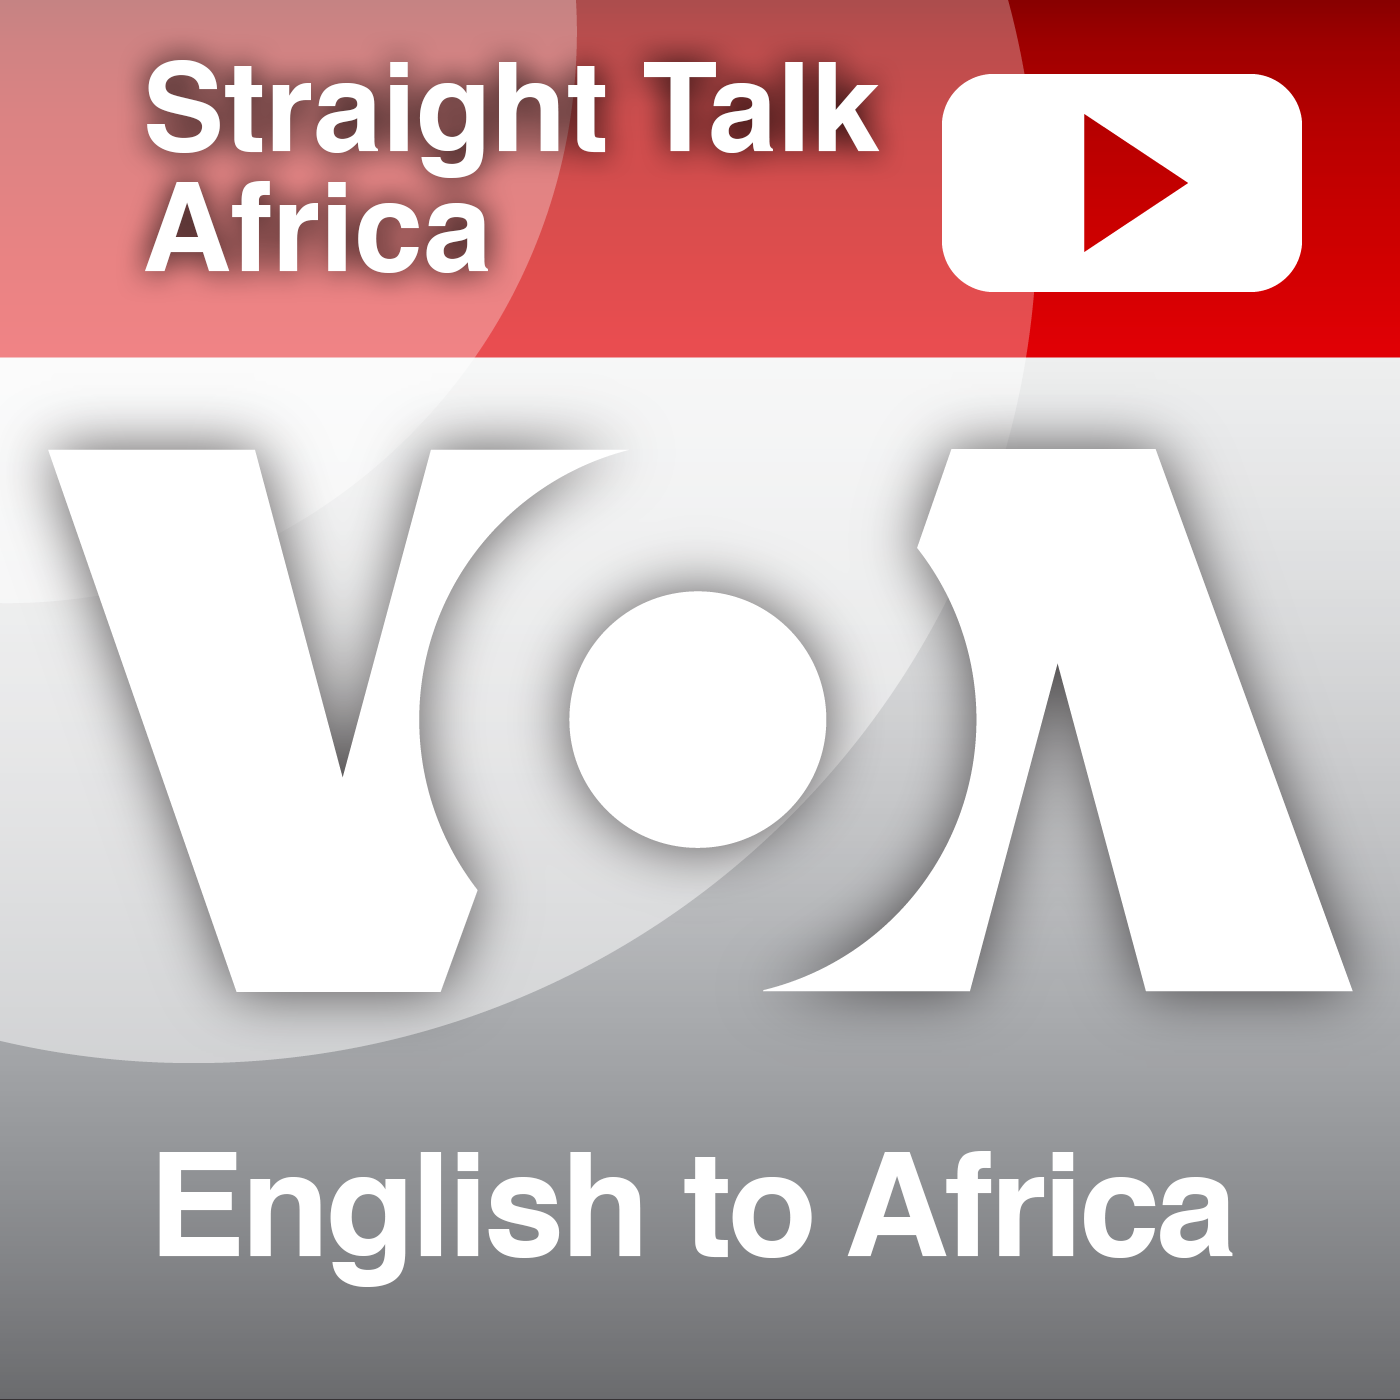 Straight Talk Africa - Voice of America